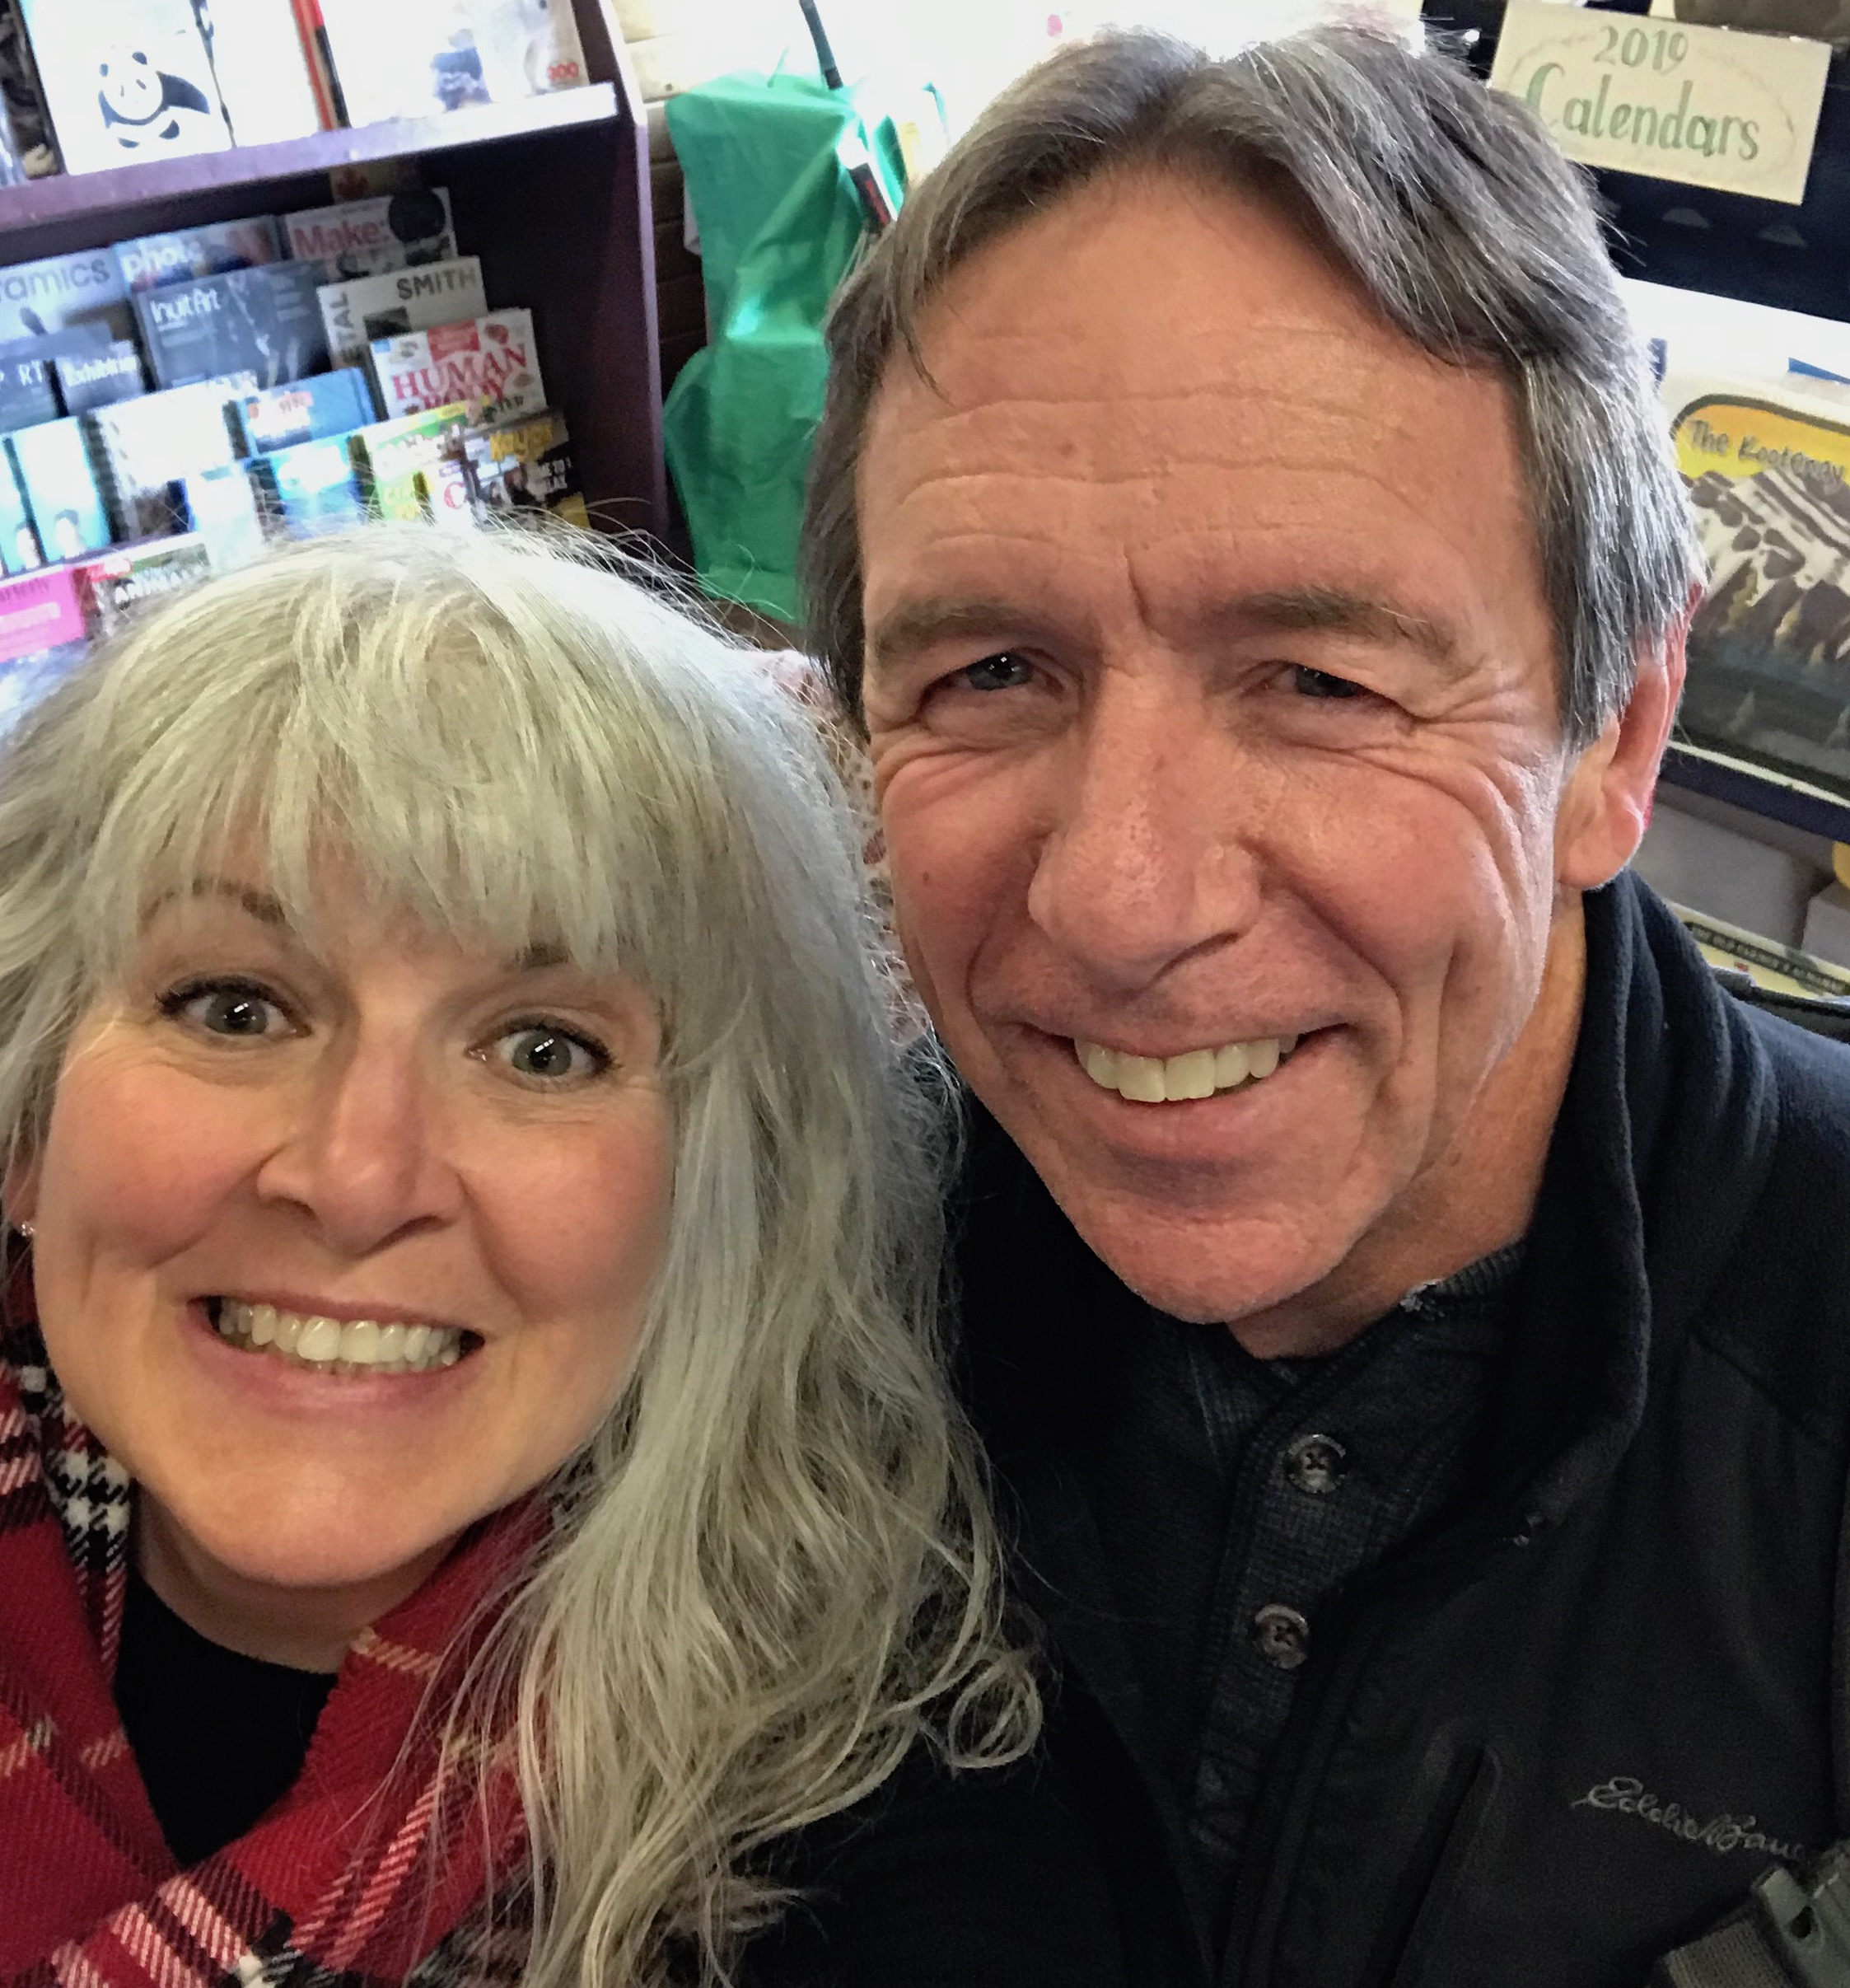 Special thanks to my favourite movie maker and photo taker friend, Dave Heagy!! I am so grateful for your generosity of spirit and willingness to give so freely of your time and energy…just because you enjoy it!